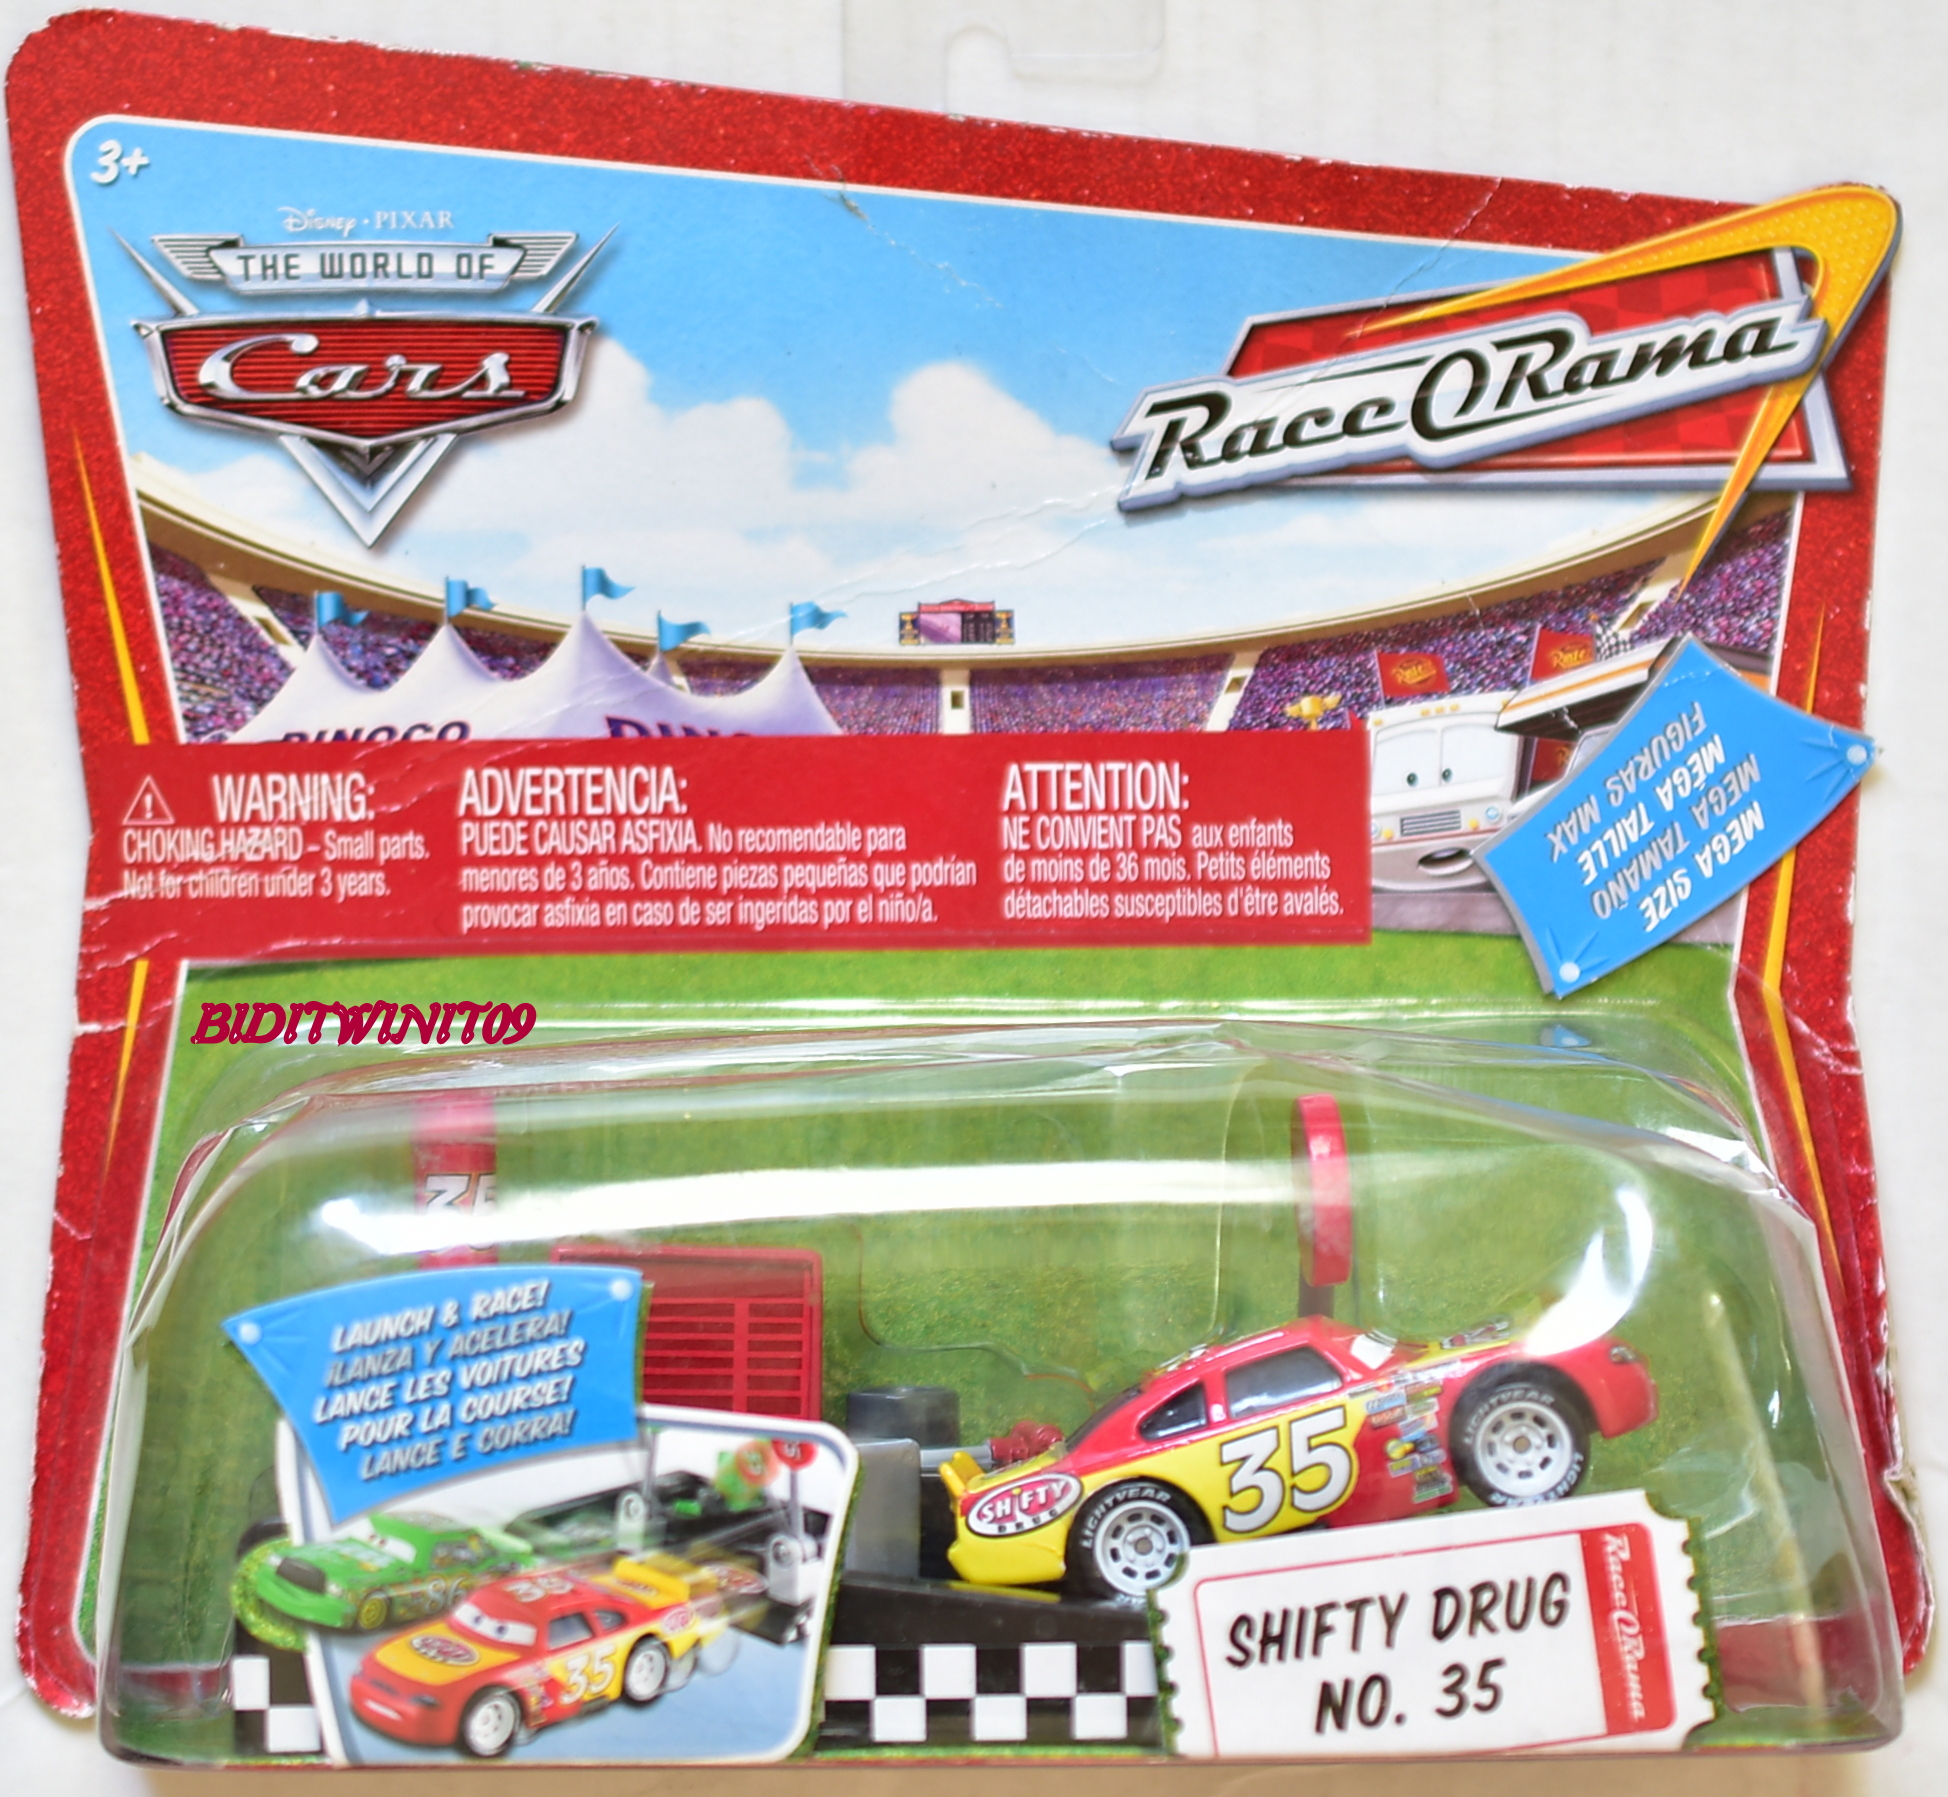 DISNEY PIXAR THE WORLD OF CARS RACE ORAMA LAUNCH & RACE SHIFTY DRUG #35 E+